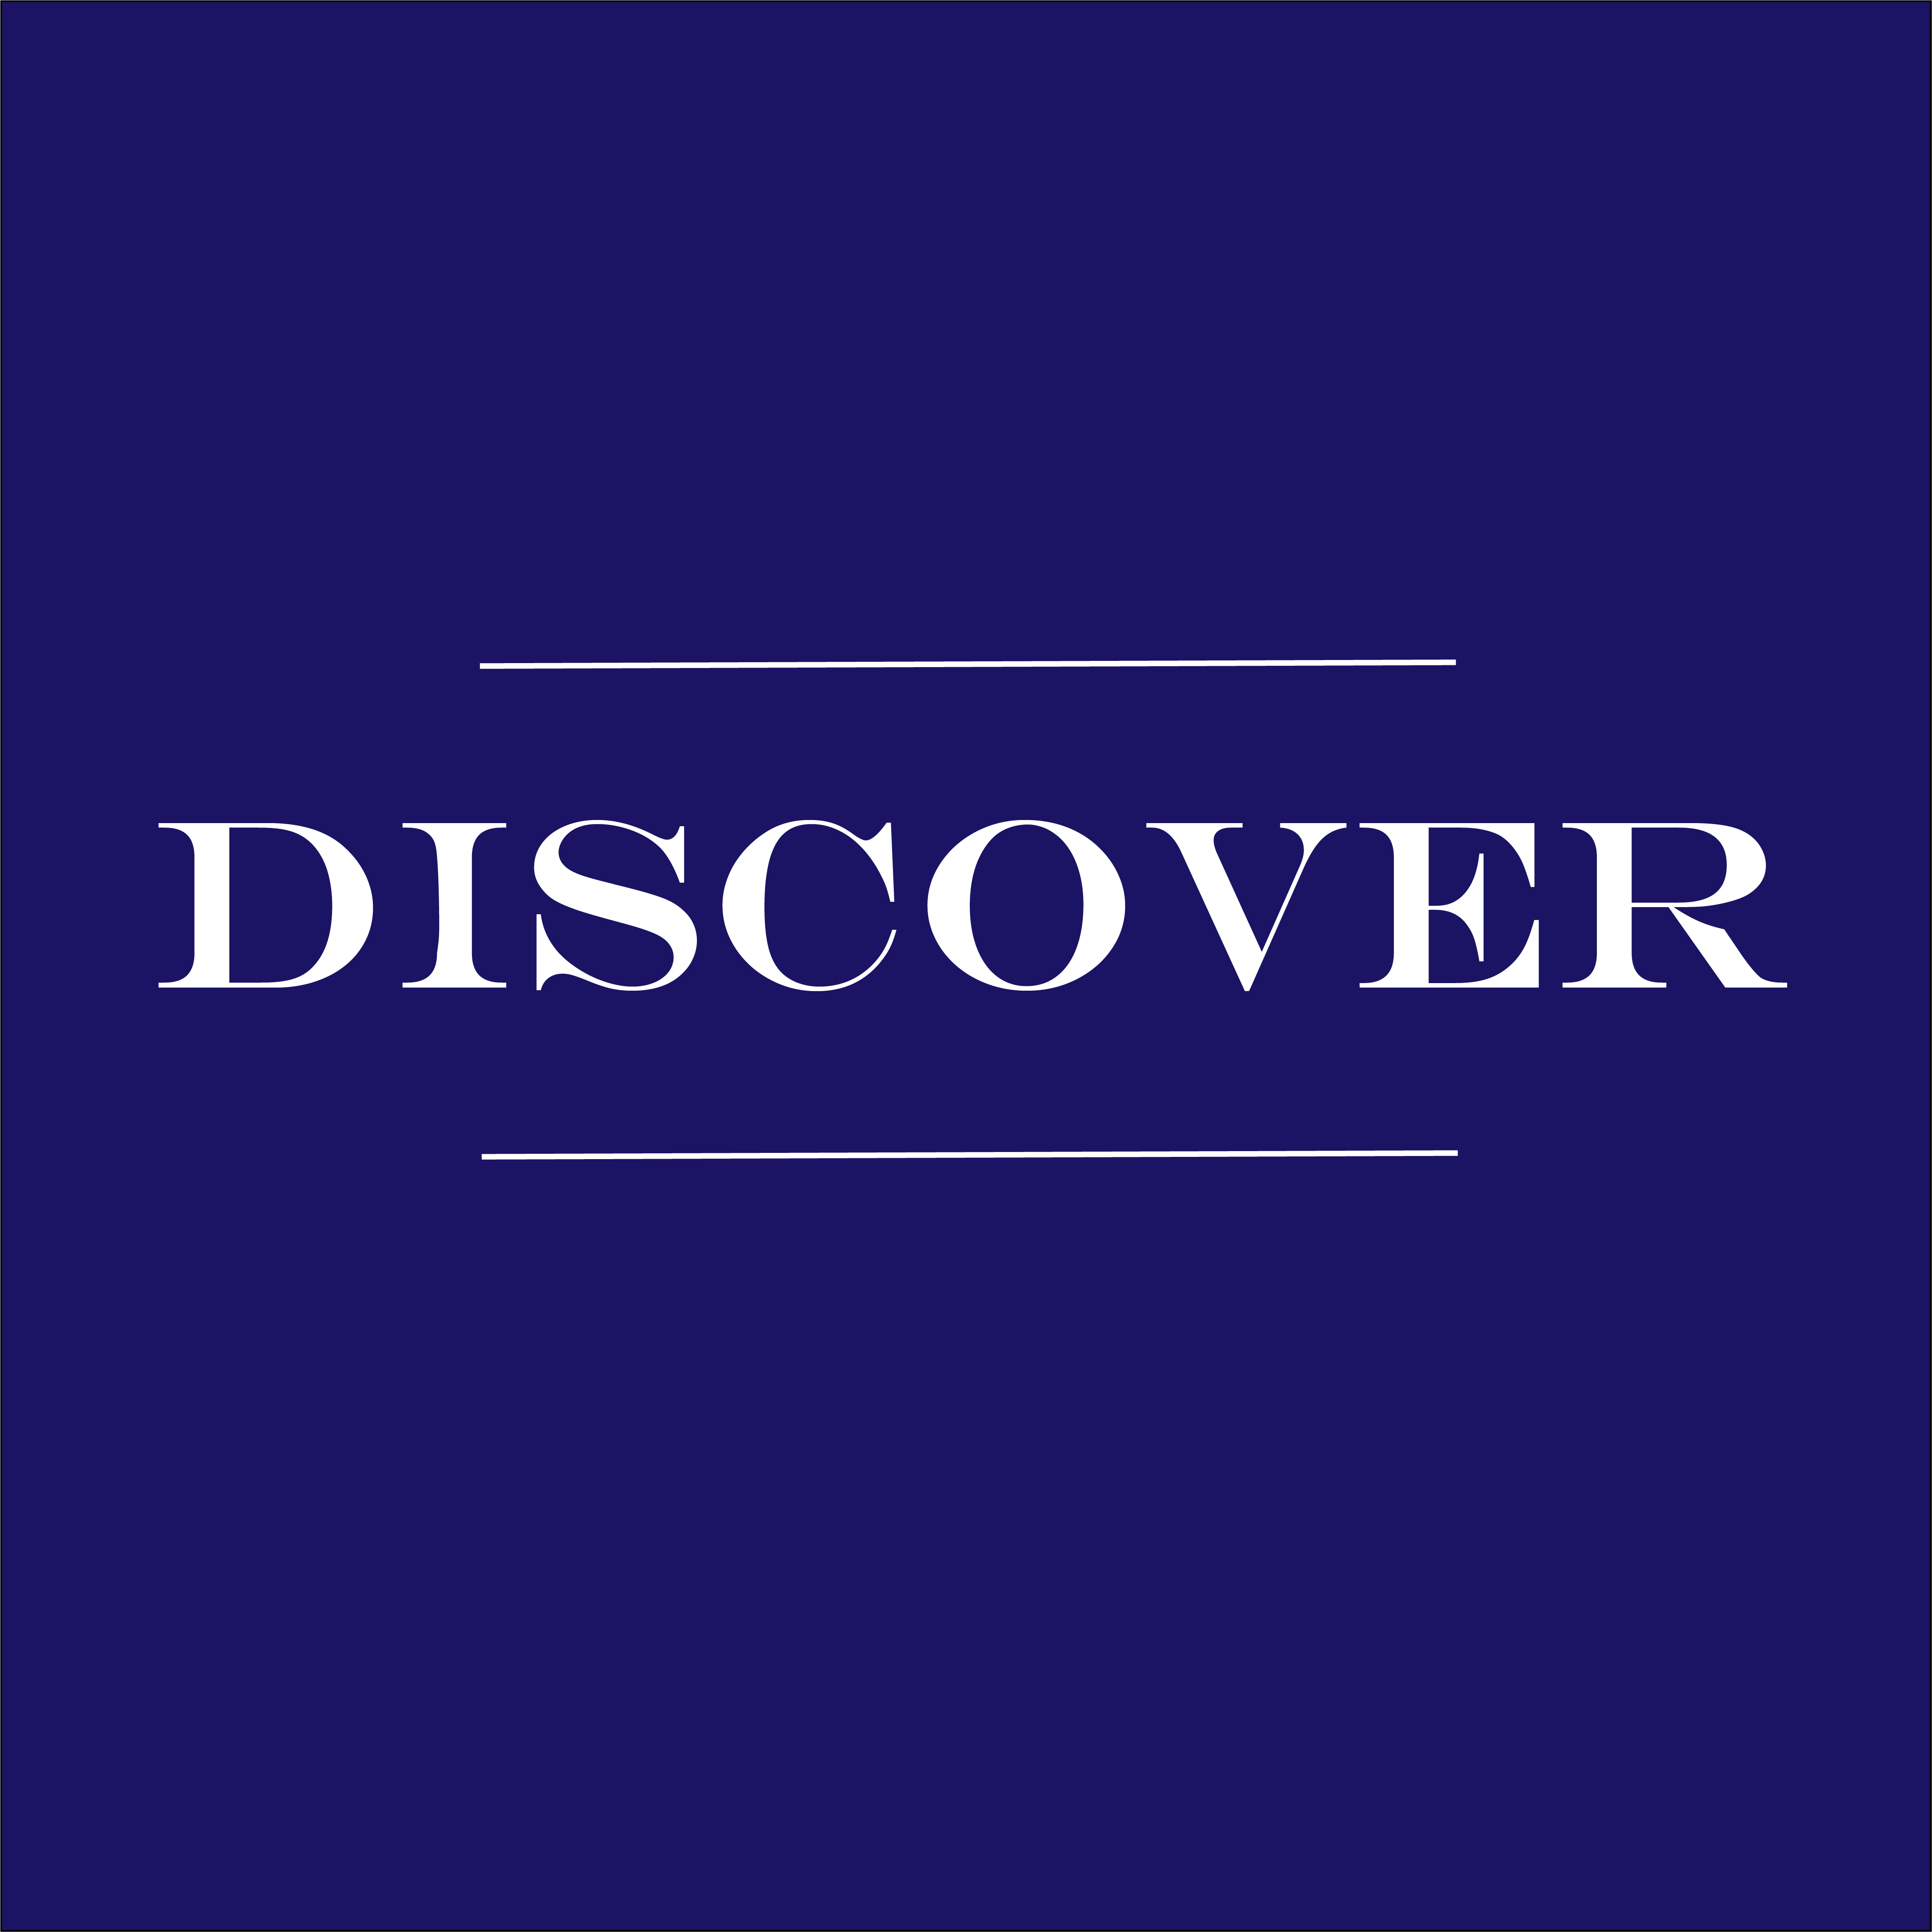 """Image with the word """"Discover"""""""